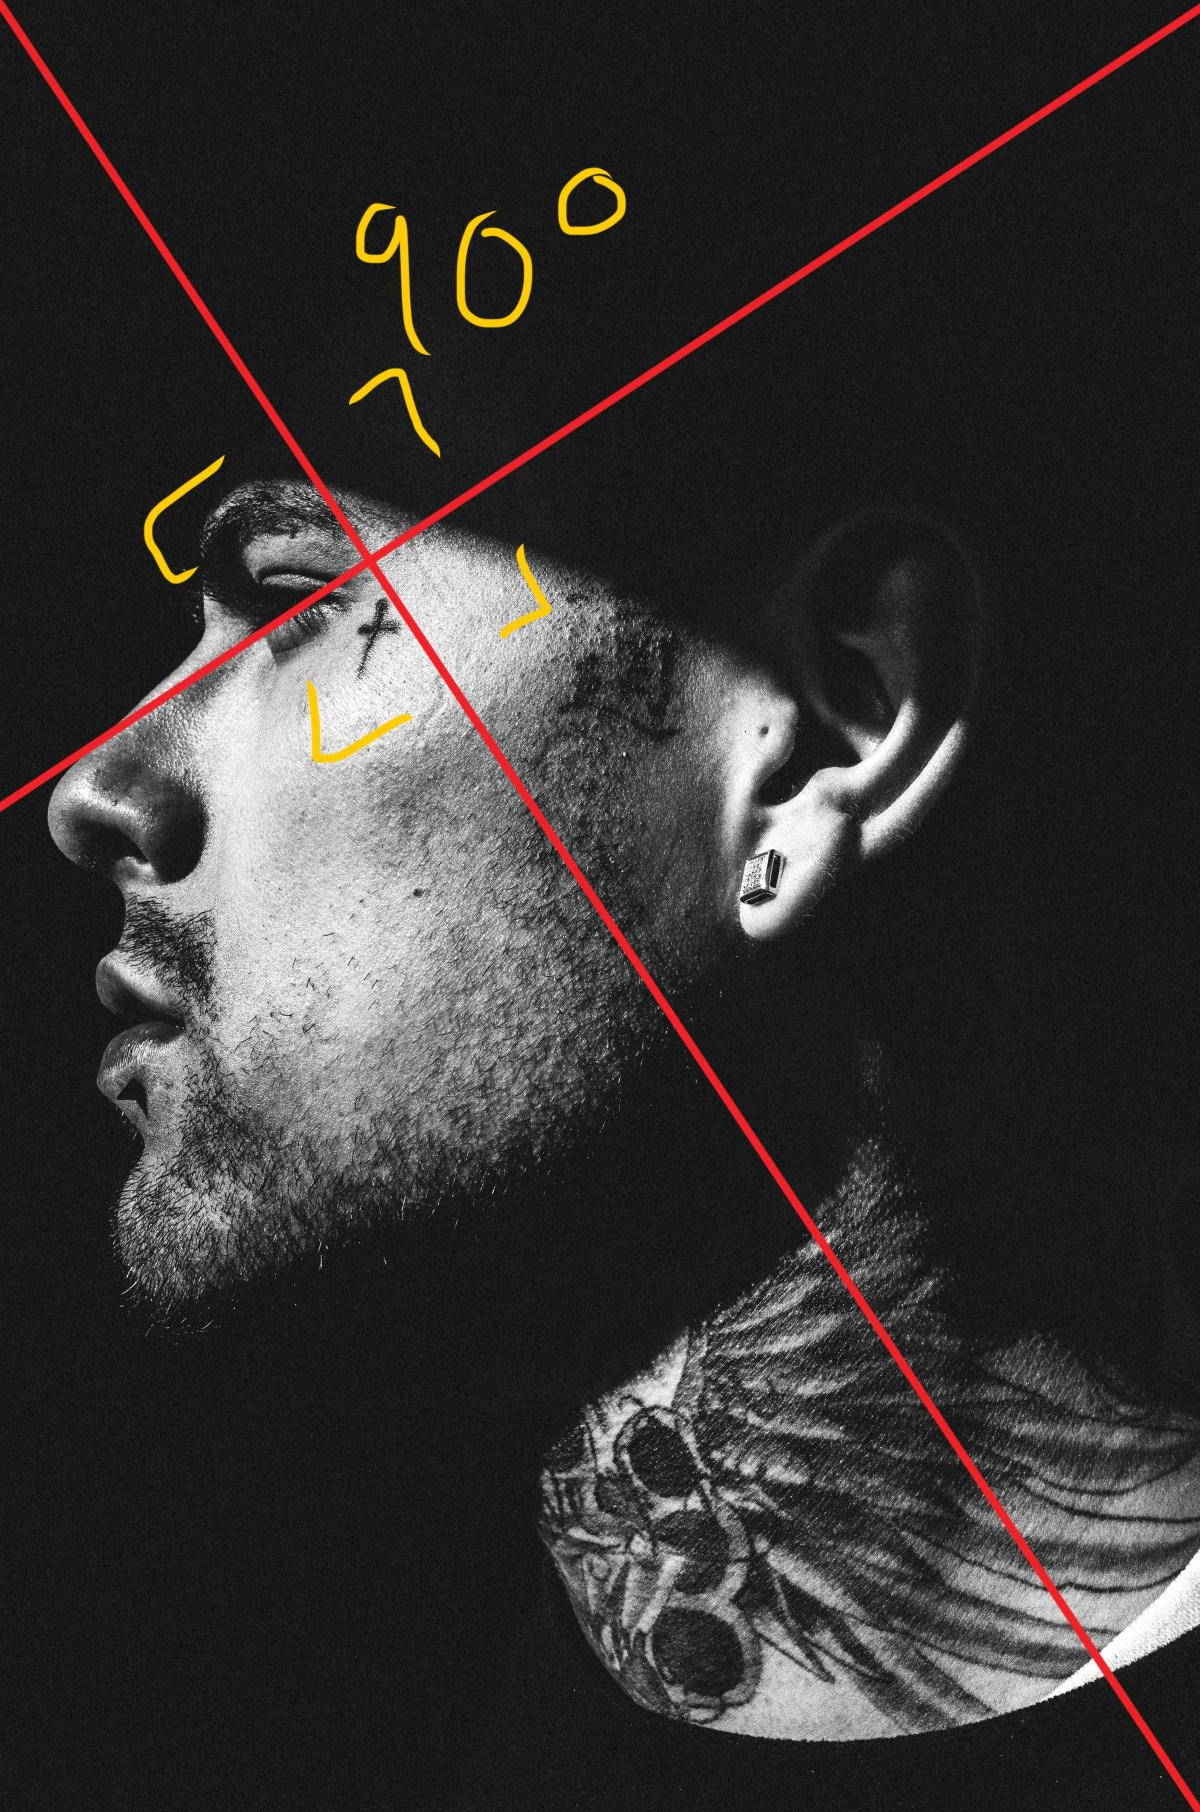 Golden triangle analysis for Downtown LA, side face tattoo.